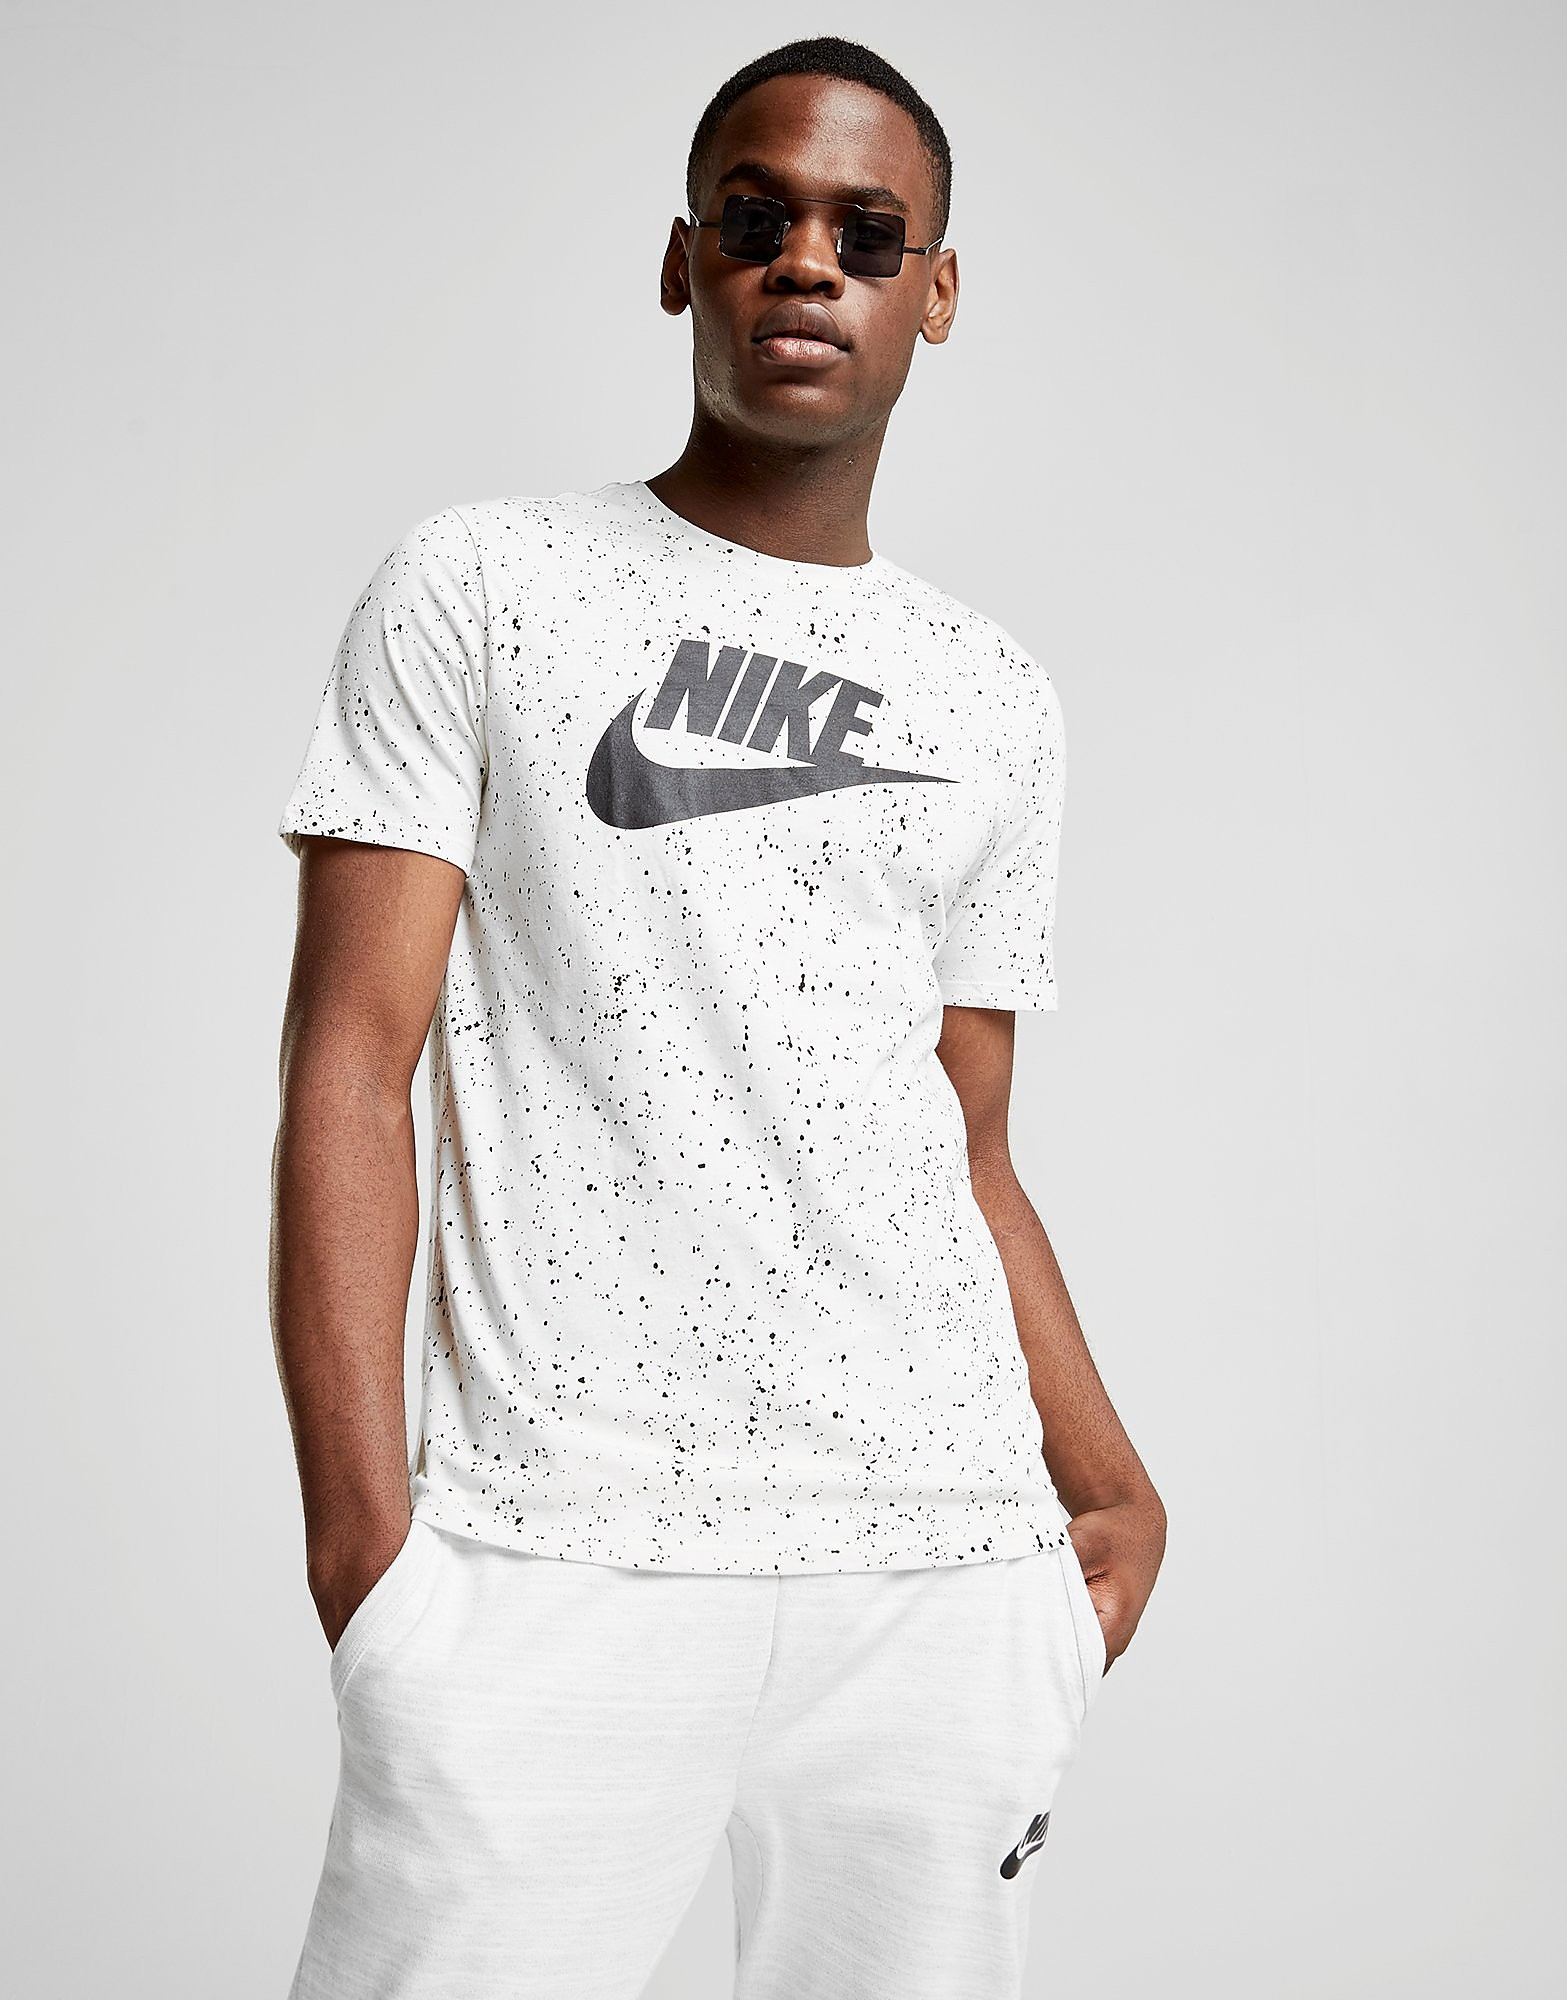 Nike camiseta Futura All Over Print